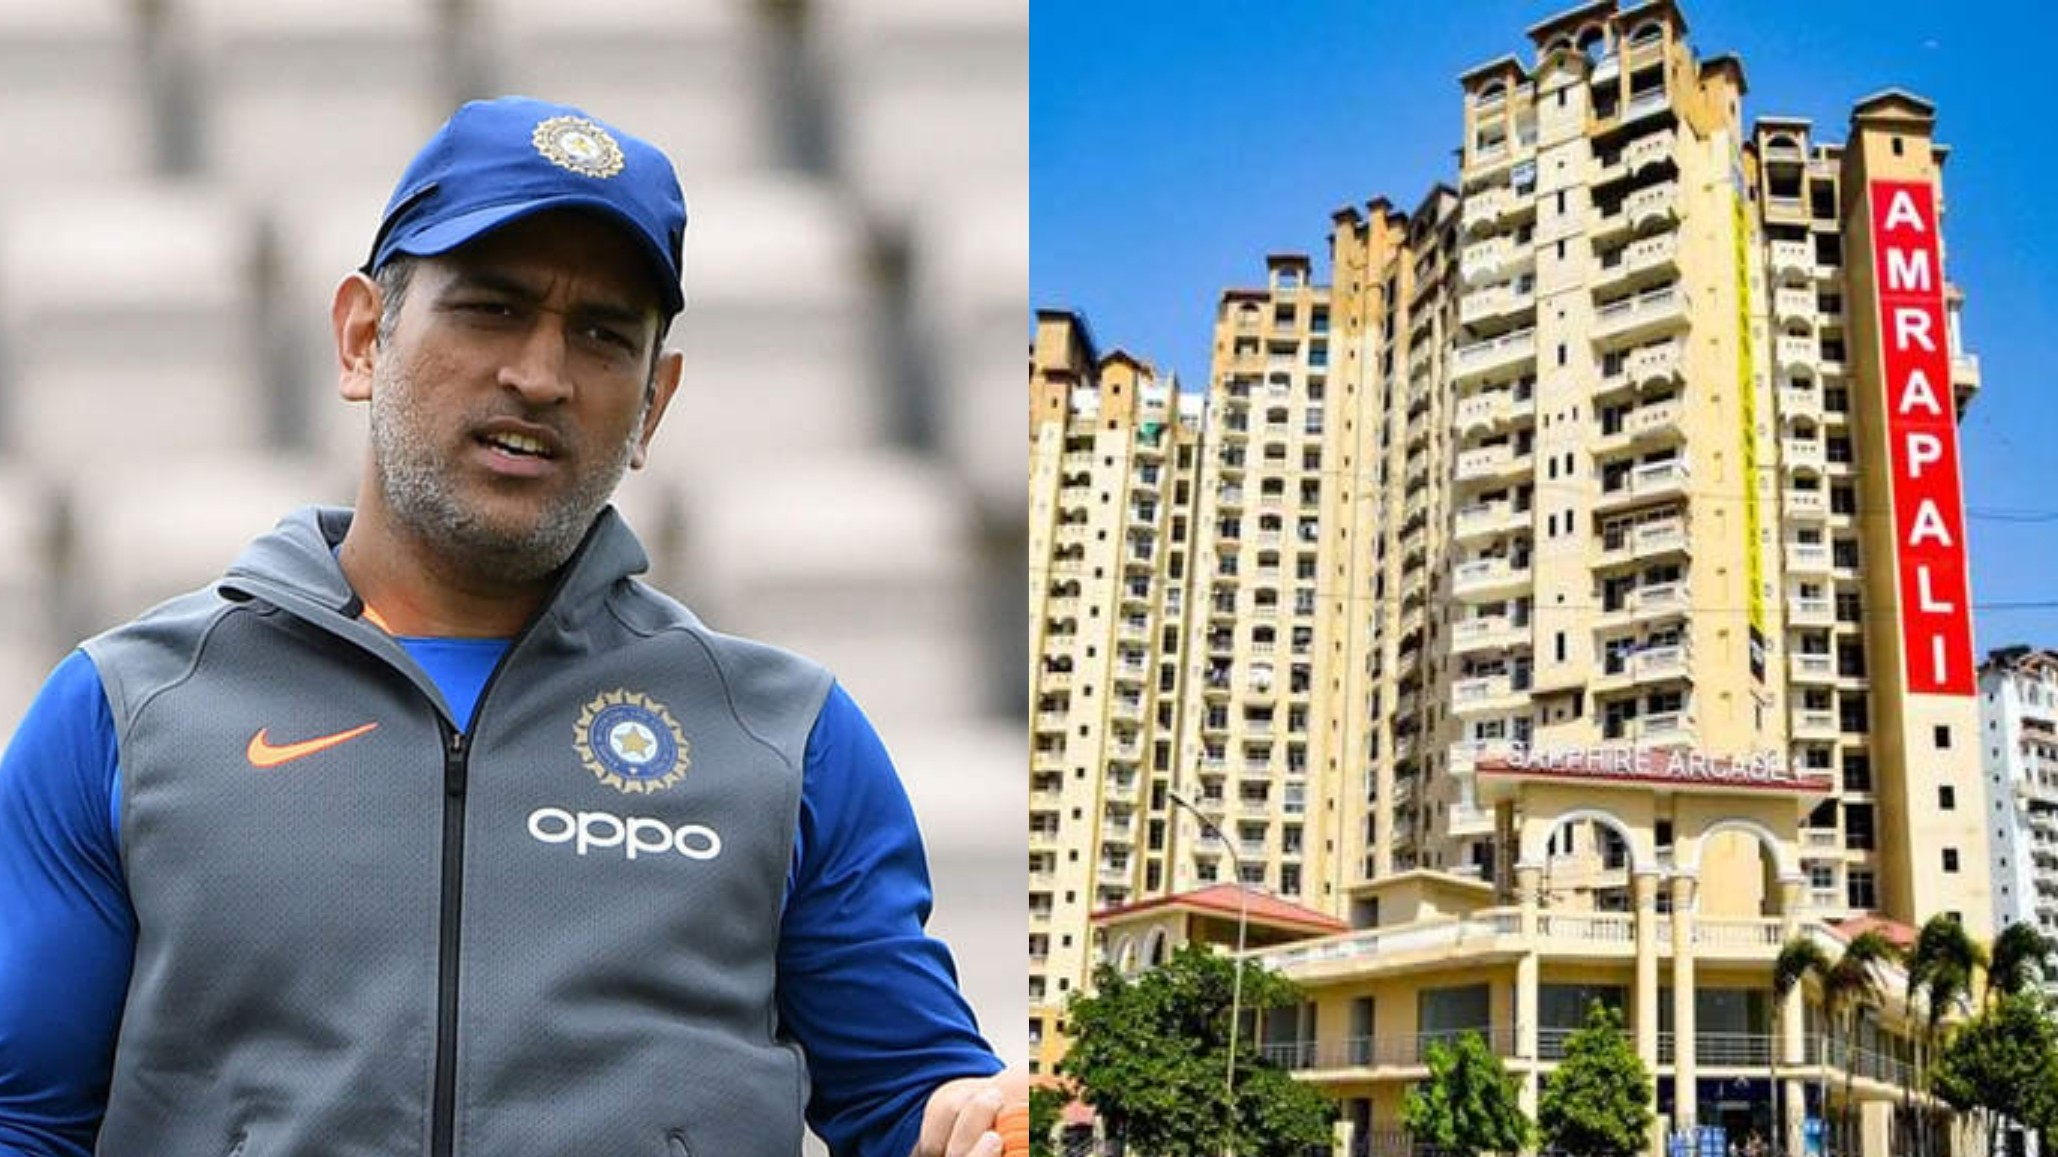 MS Dhoni named in seven FIRs as part of criminal conspiracy in Amrapali Group scam